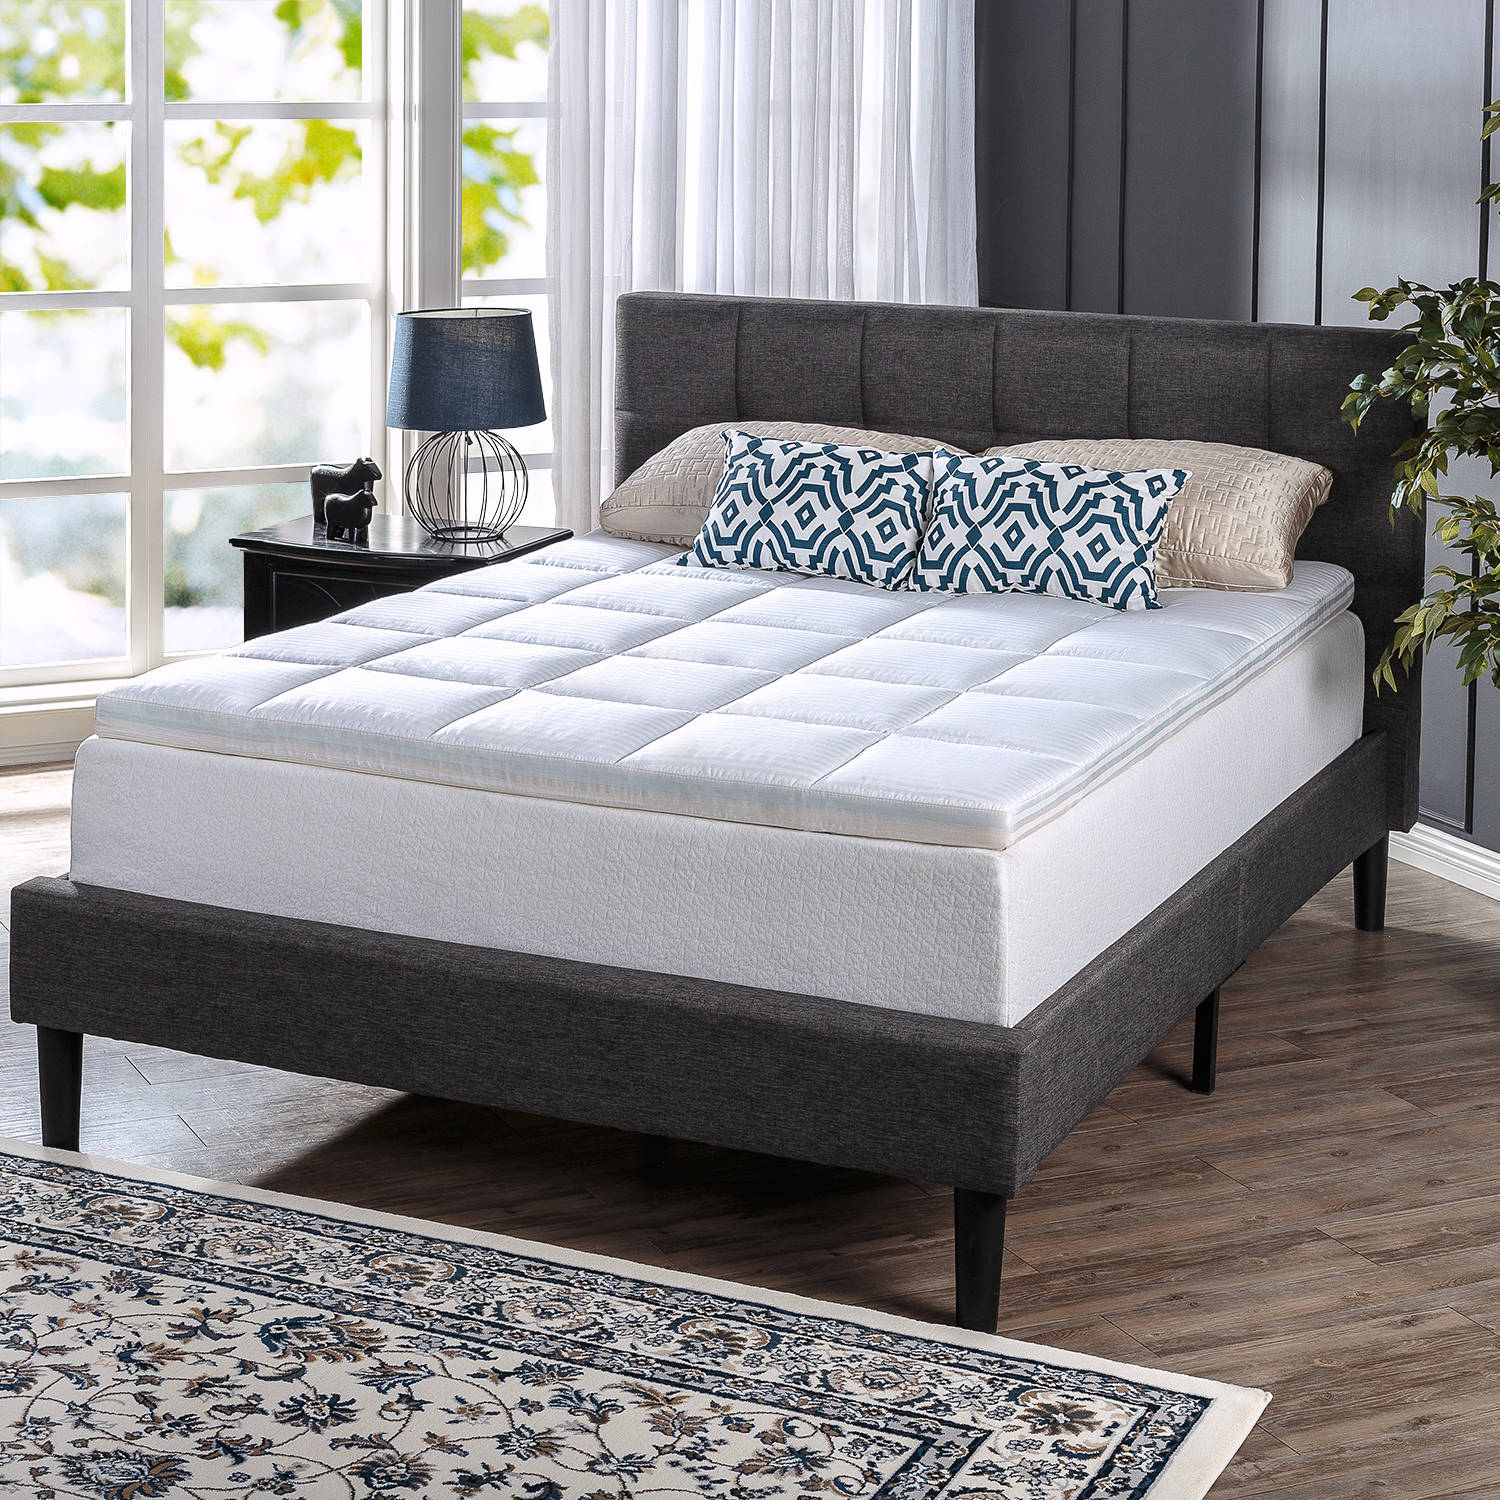 "Spa Sensations Comfort Bliss Memory Foam and Fiber Quilted 3"" Mattress Topper"